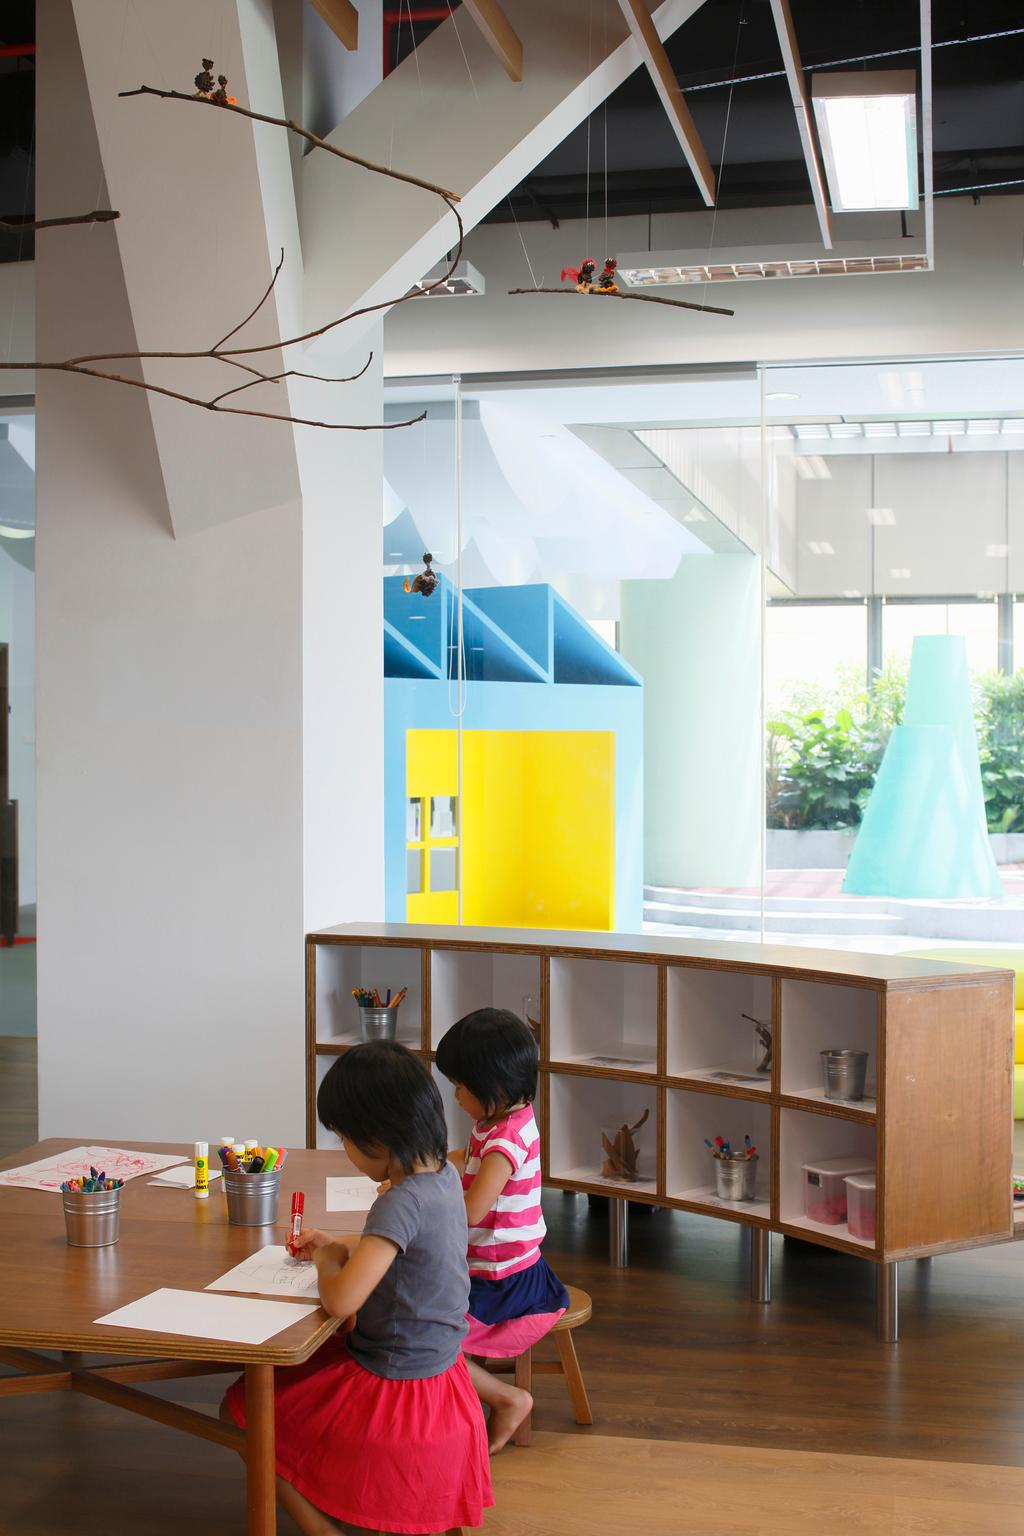 Cove 2 Preschool, Commercial, Architect, Lekker Architects, Contemporary, Ceiling Lighting, White Pillar, Wooden Tables, Wooden Shelves, Open Shelves, Flora, Jar, Plant, Potted Plant, Pottery, Vase